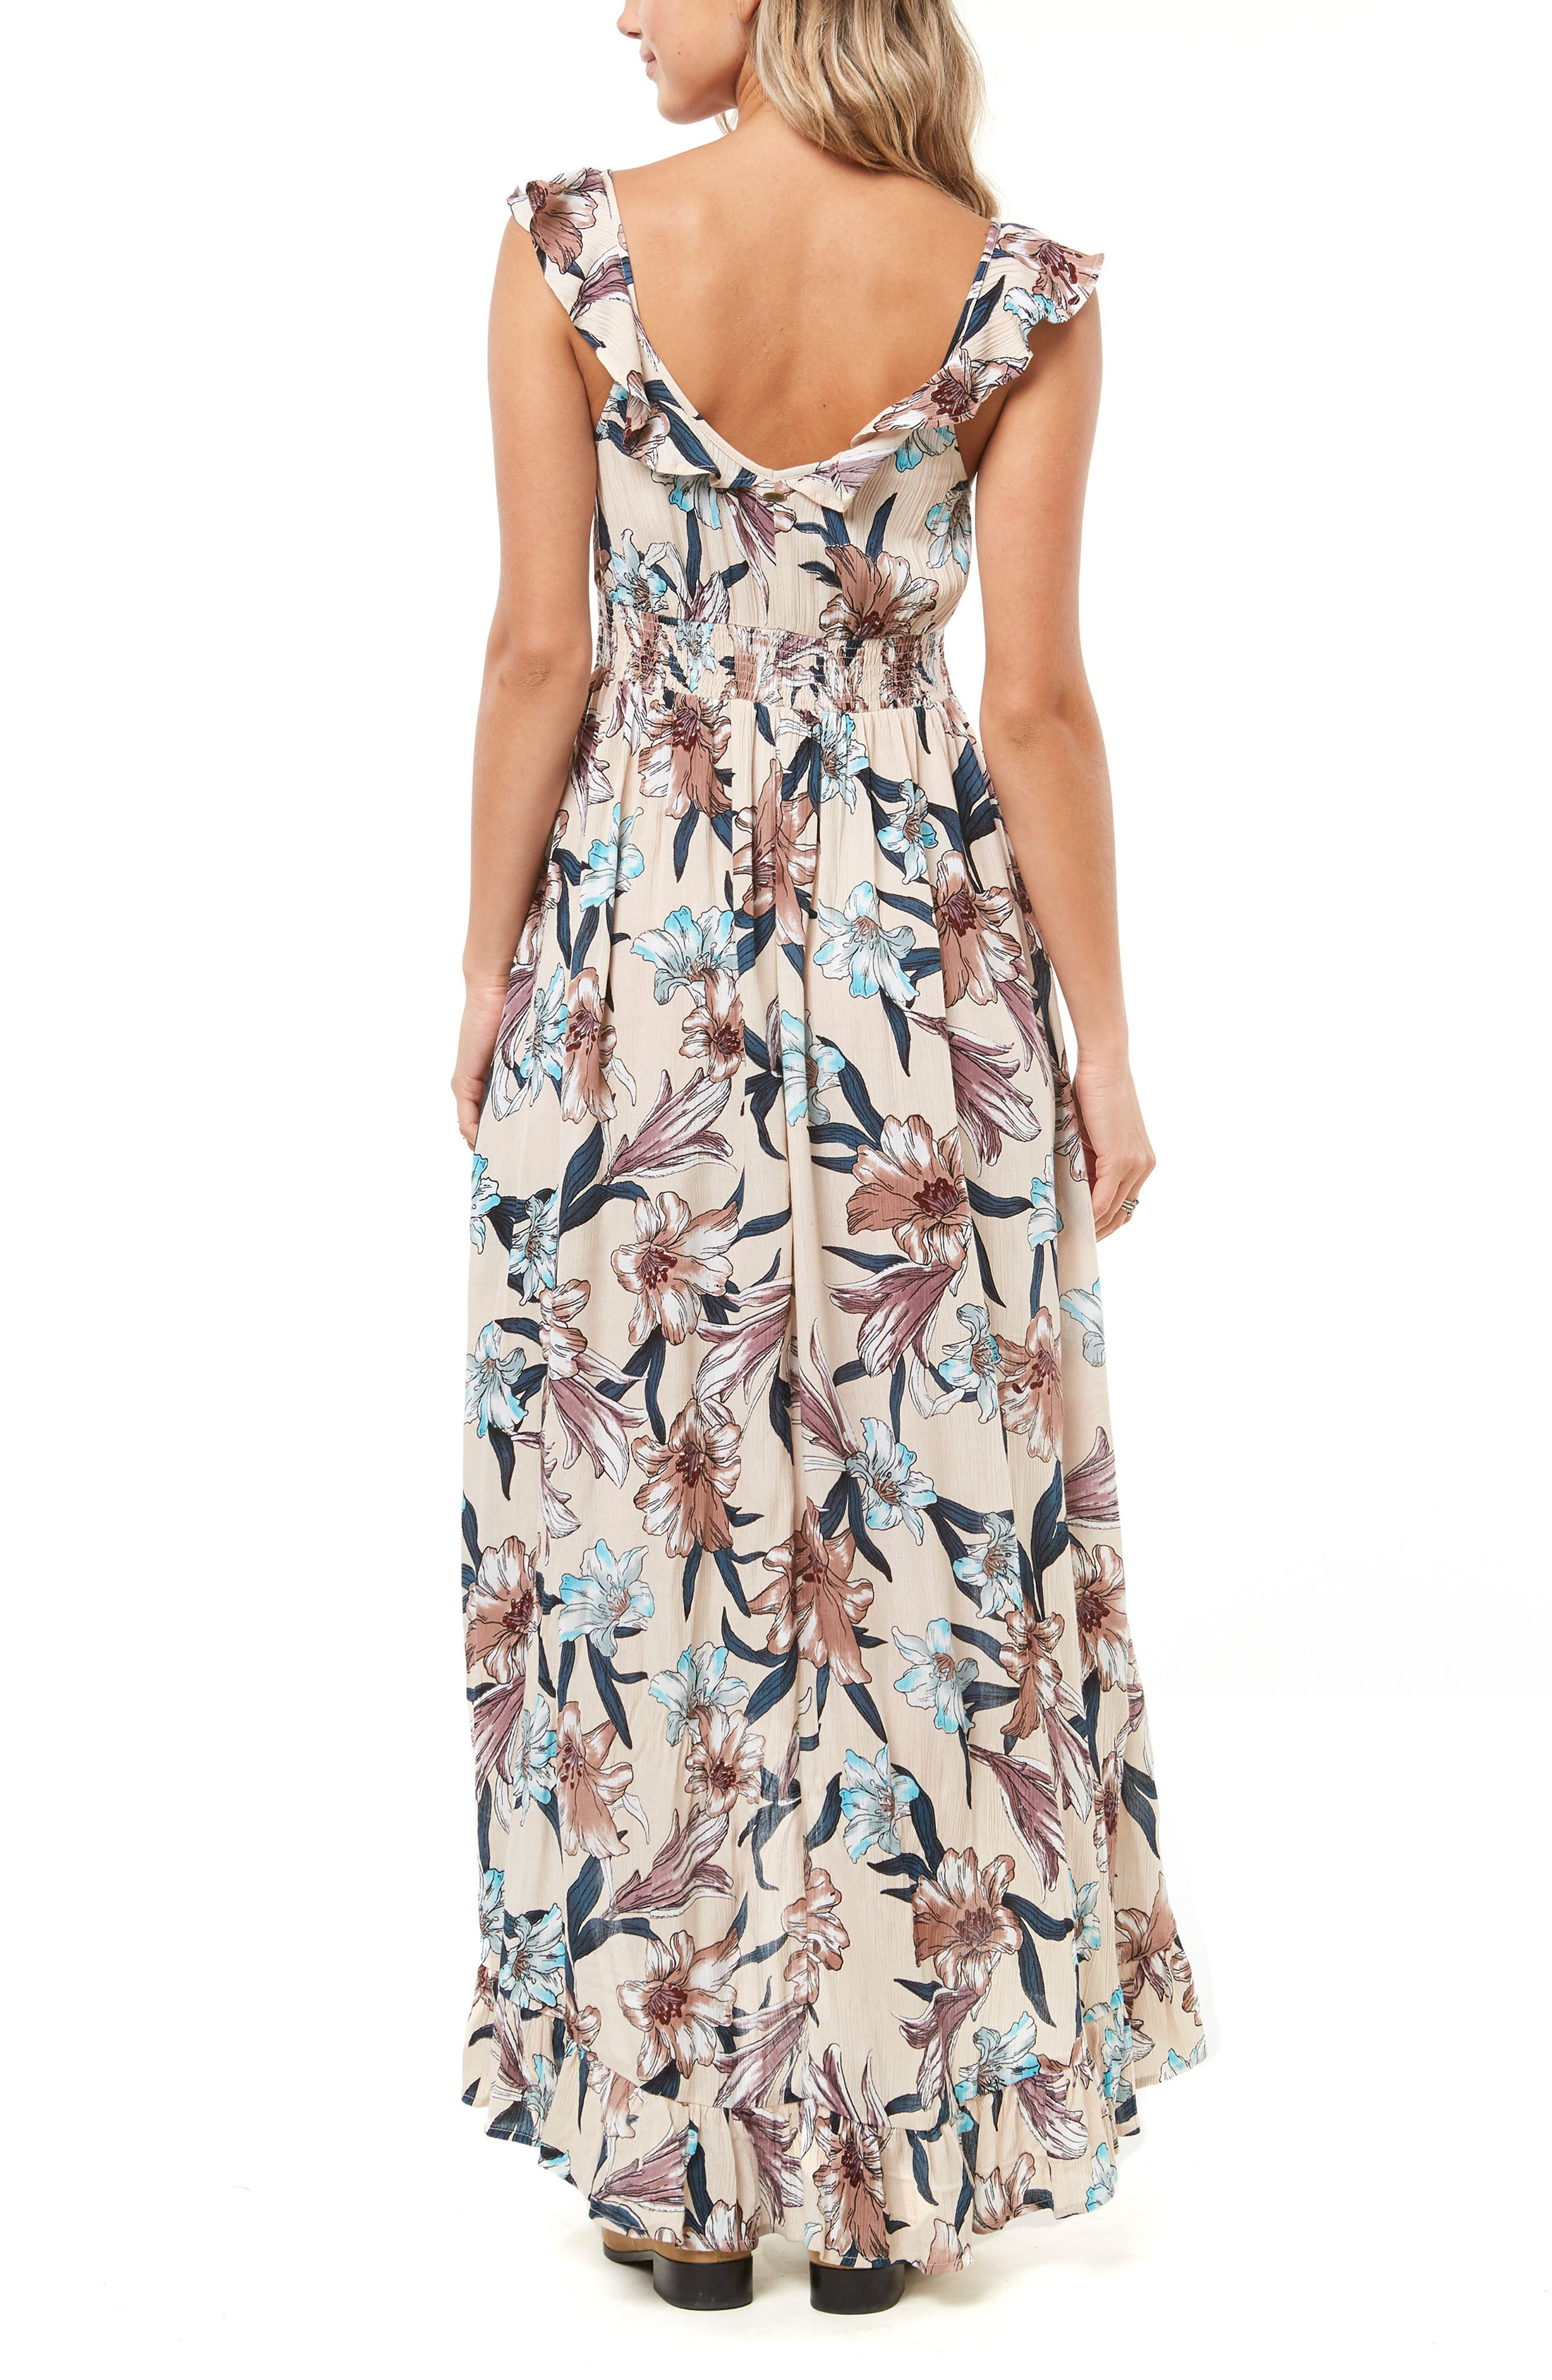 Cleo Ruffle Maxi Dress,                             Alternate thumbnail 2, color,                             MULTI COLORED